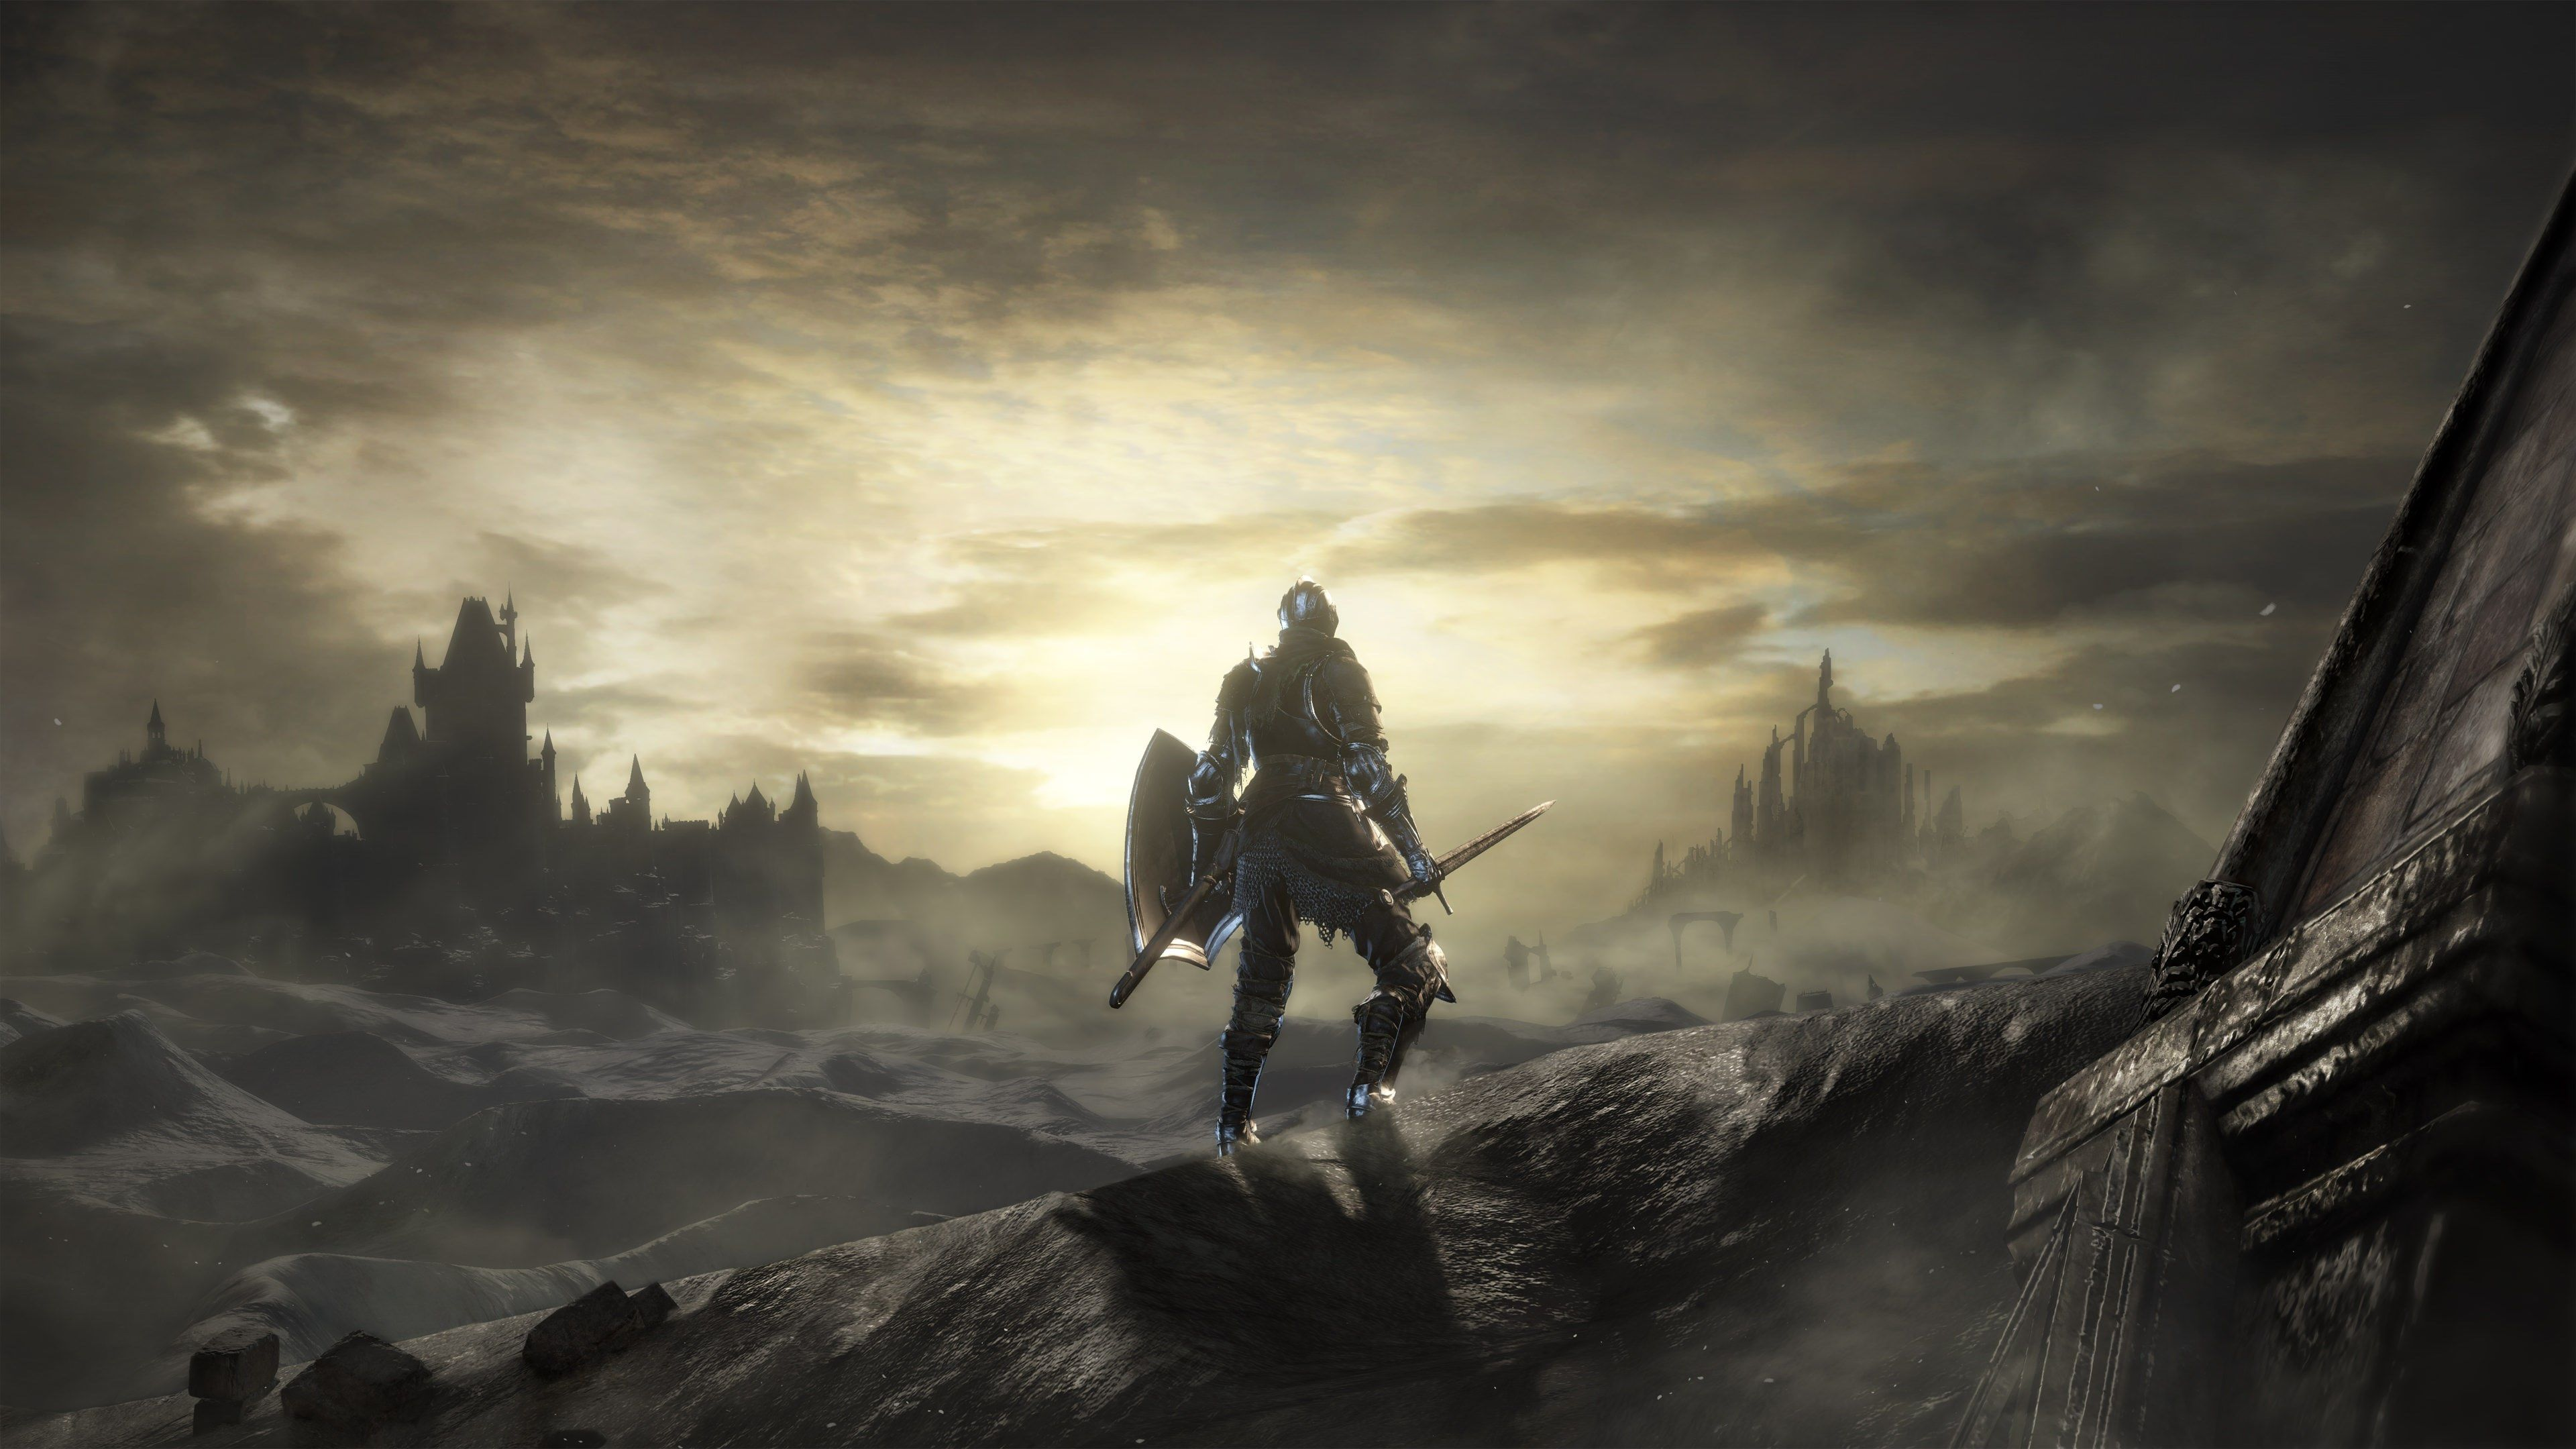 3840x2160 Dark Souls 3 4k Wallpaper For Desktop Background Warriors Wallpaper Dark Souls Wallpaper Dark Souls Art